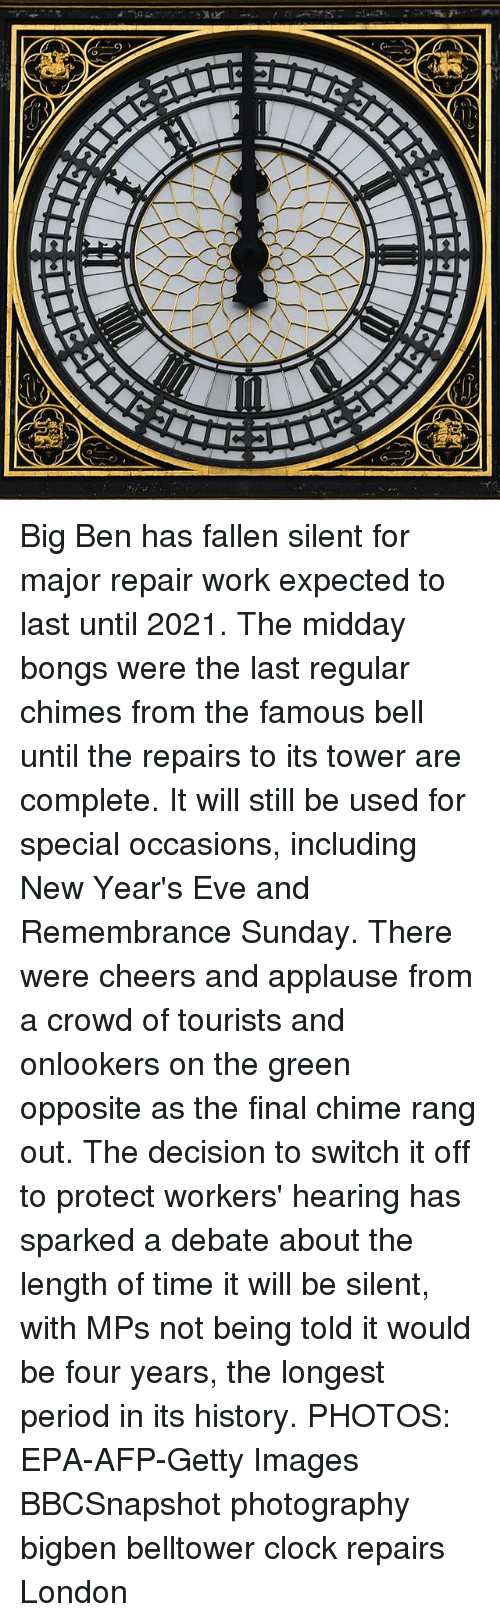 Evees: Big Ben has fallen silent for major repair work expected to last until 2021. The midday bongs were the last regular chimes from the famous bell until the repairs to its tower are complete. It will still be used for special occasions, including New Year's Eve and Remembrance Sunday. There were cheers and applause from a crowd of tourists and onlookers on the green opposite as the final chime rang out. The decision to switch it off to protect workers' hearing has sparked a debate about the length of time it will be silent, with MPs not being told it would be four years, the longest period in its history. PHOTOS: EPA-AFP-Getty Images BBCSnapshot photography bigben belltower clock repairs London